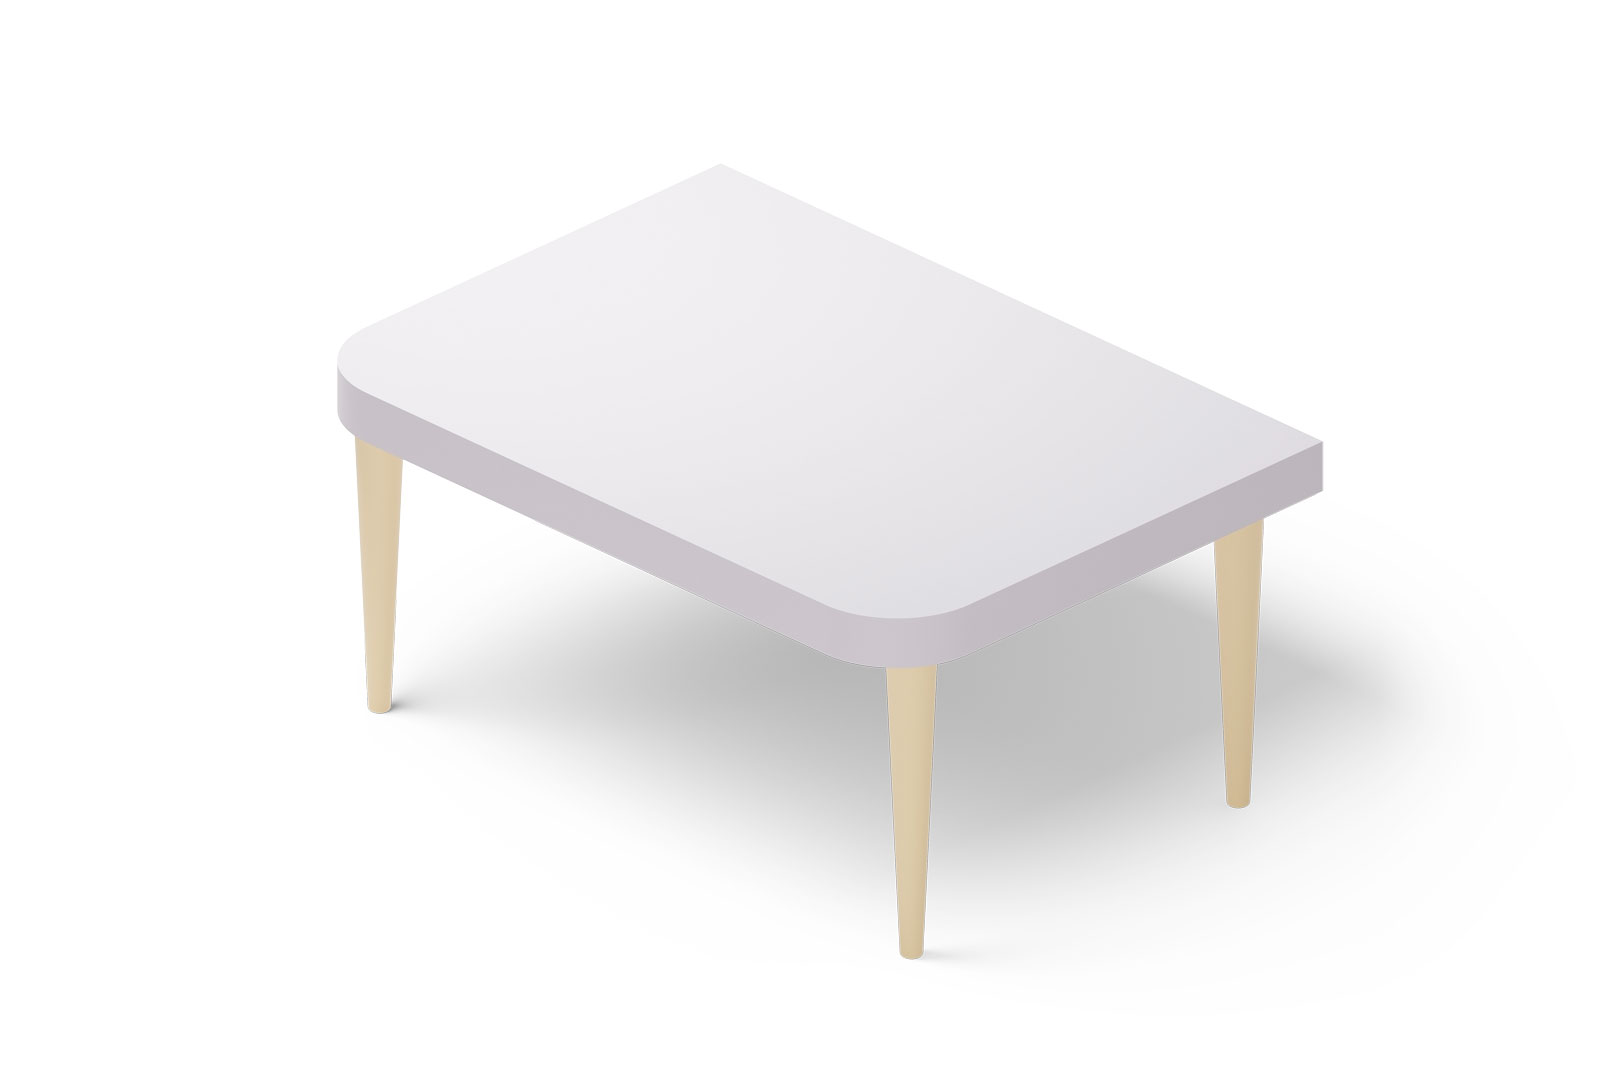 White table 3d illustration. Stylish table in simple modern style for interior design, living room.